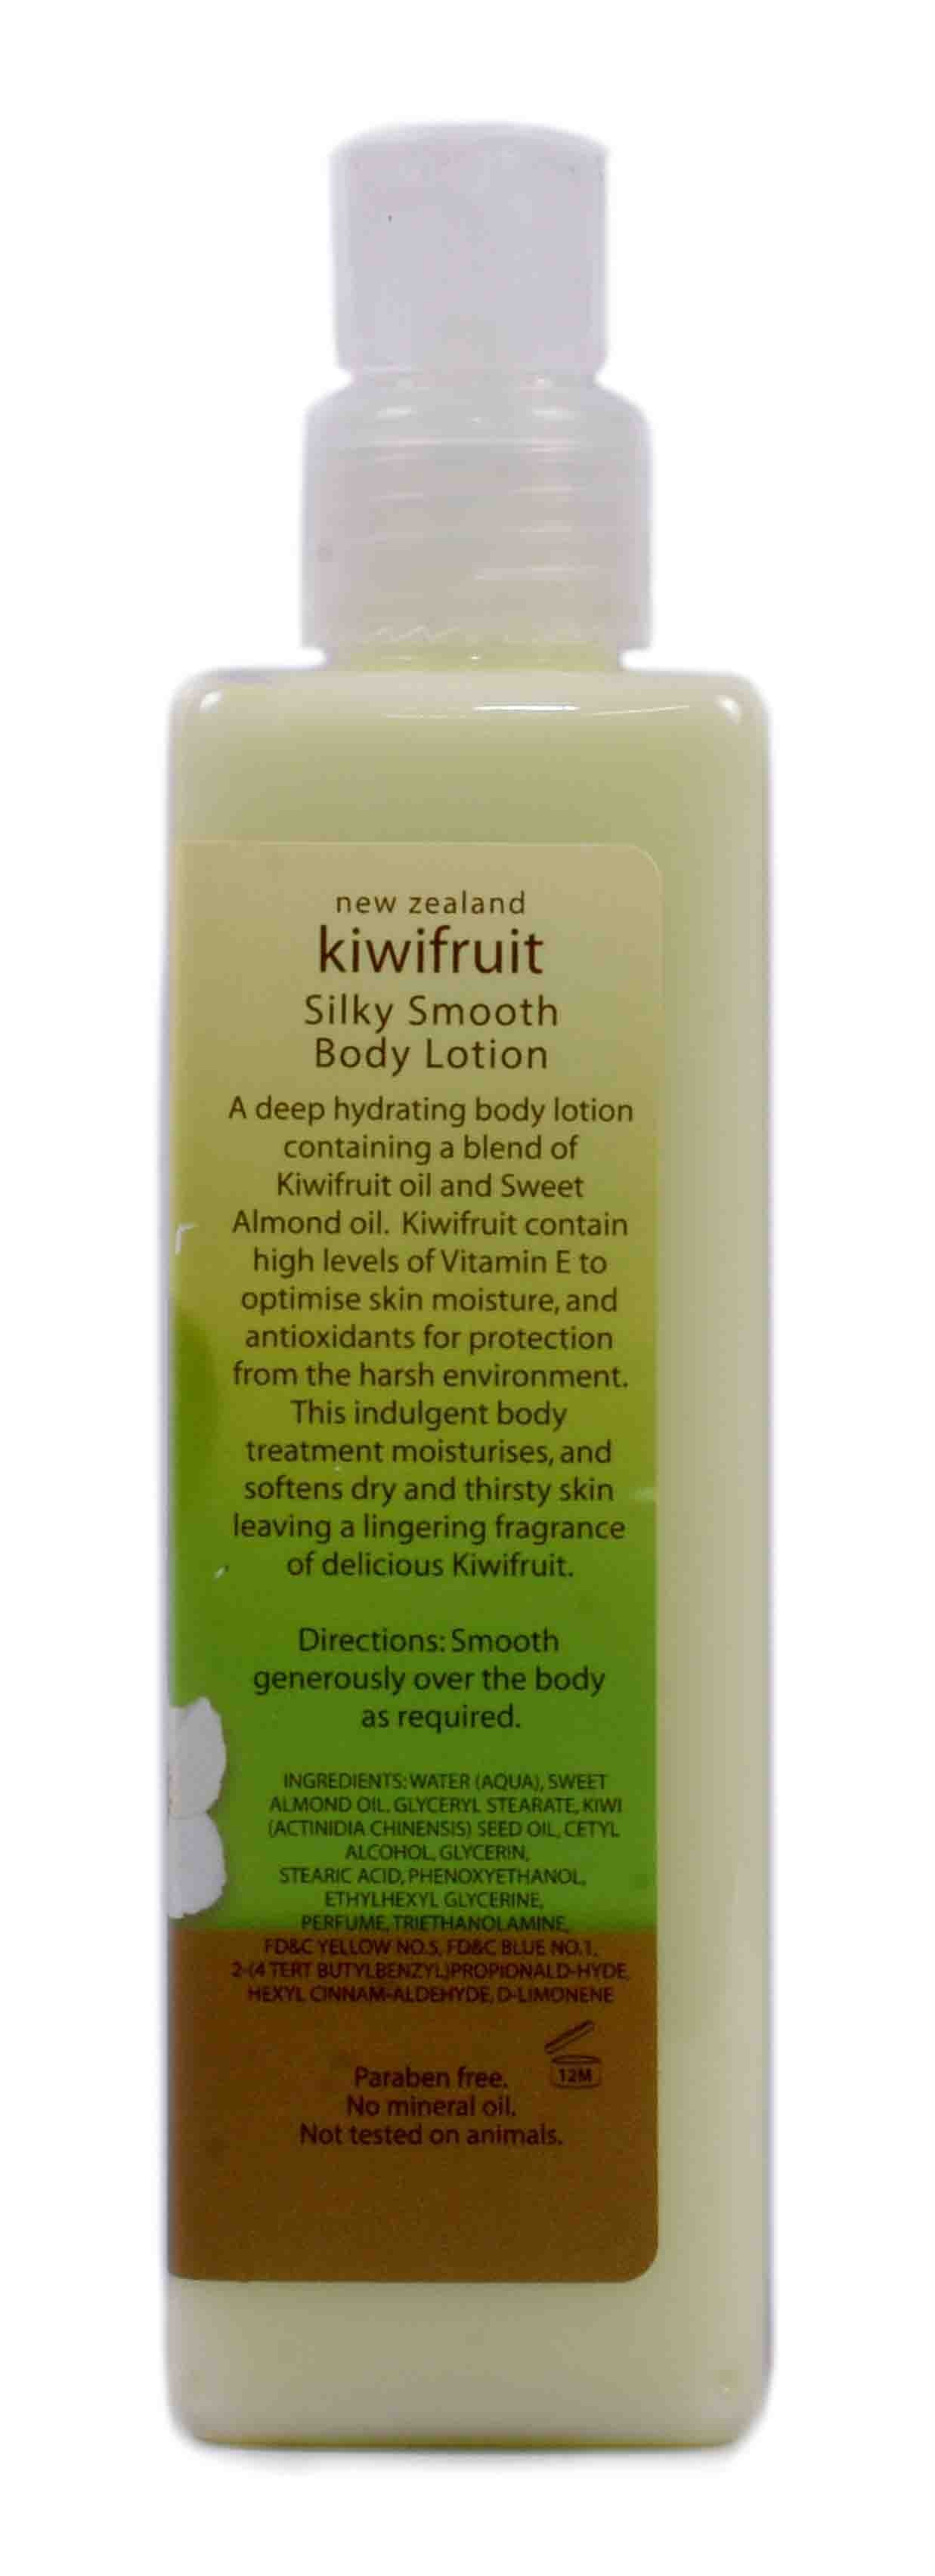 Wild Ferns Kiwifruit Body Lotion 240 ML